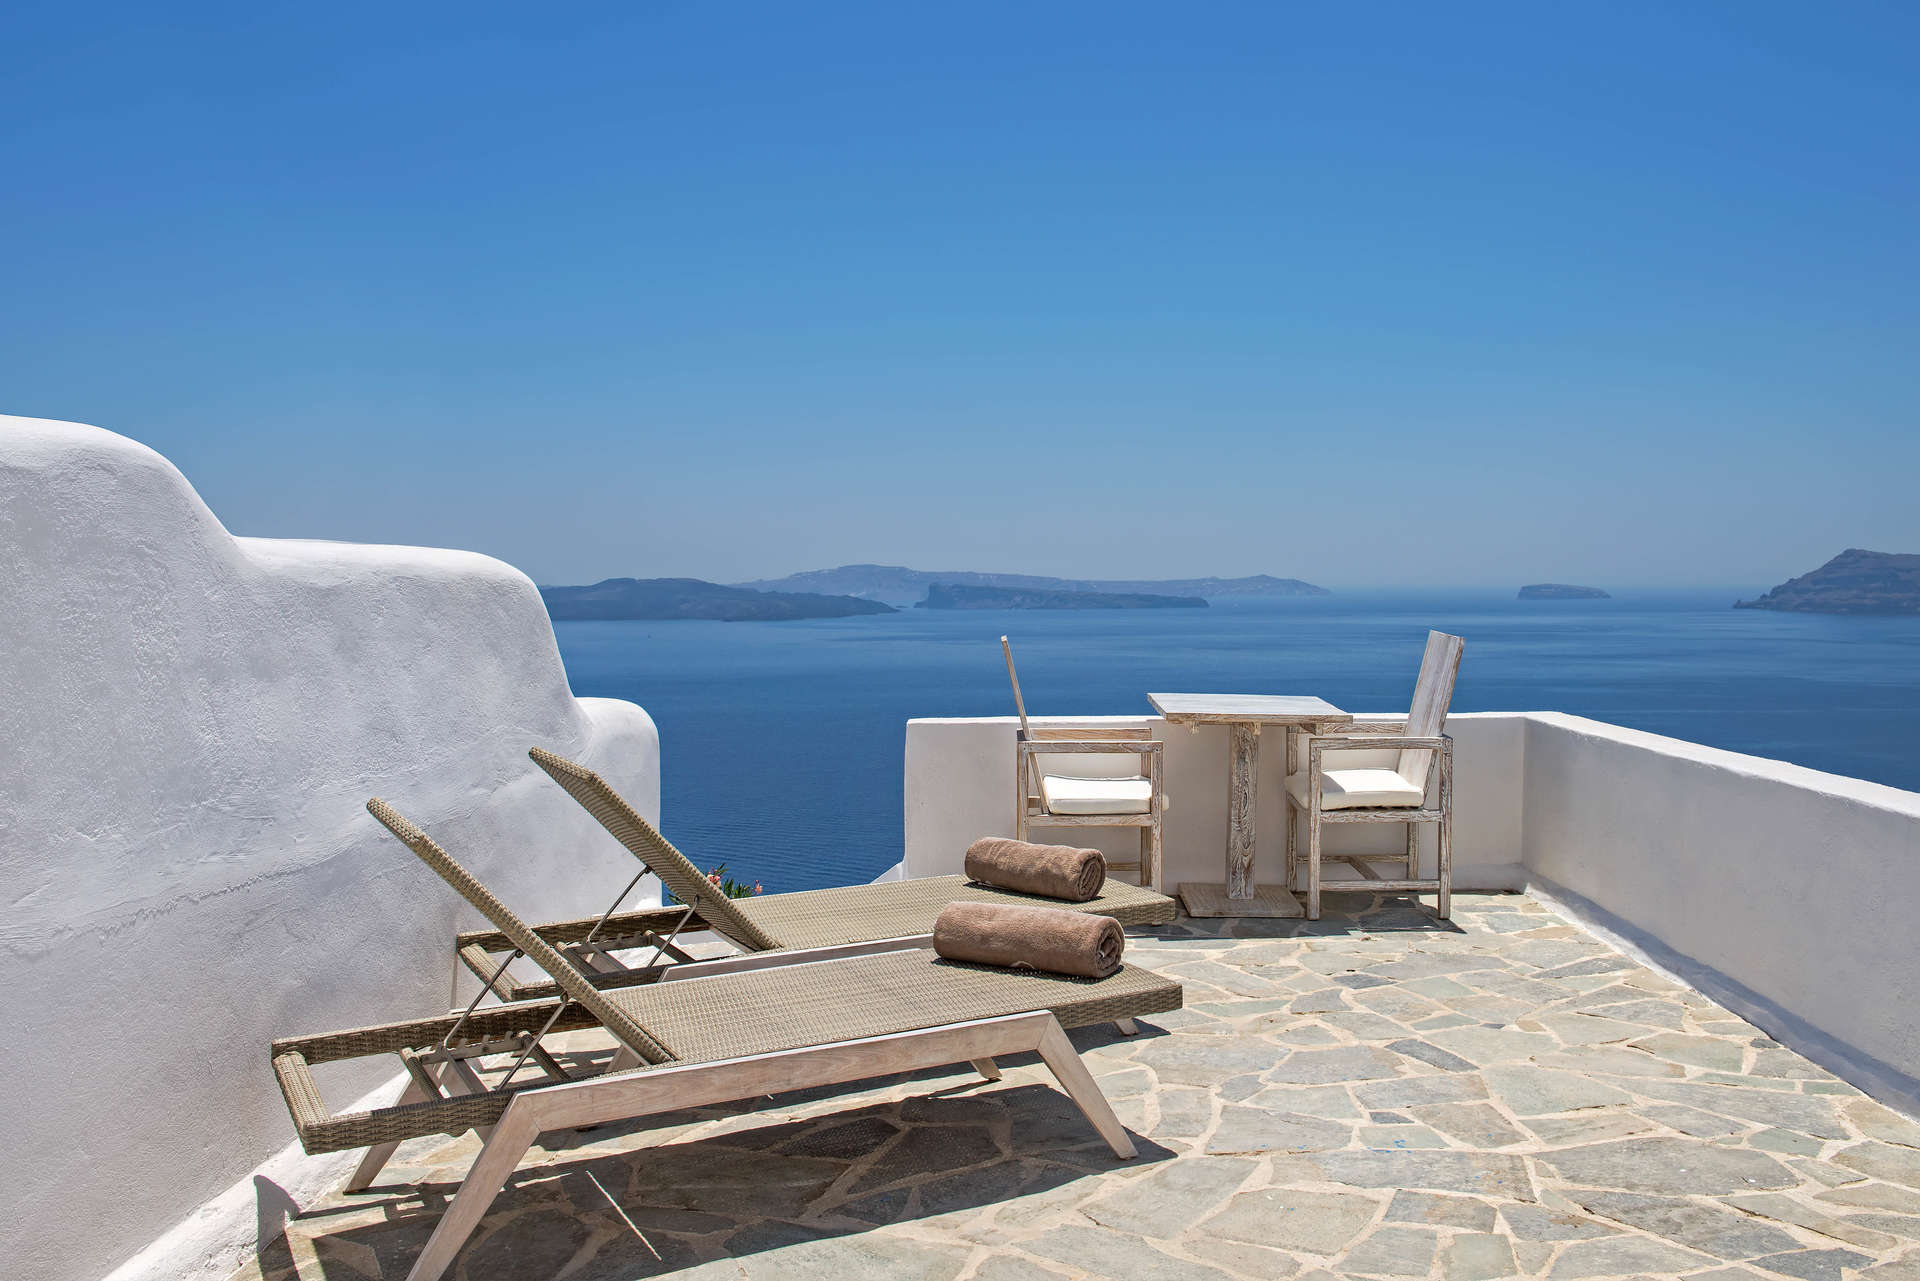 Luxury vacation rentals europe - Greece - Santorini - Oia - The Ivory Suite - Image 1/7